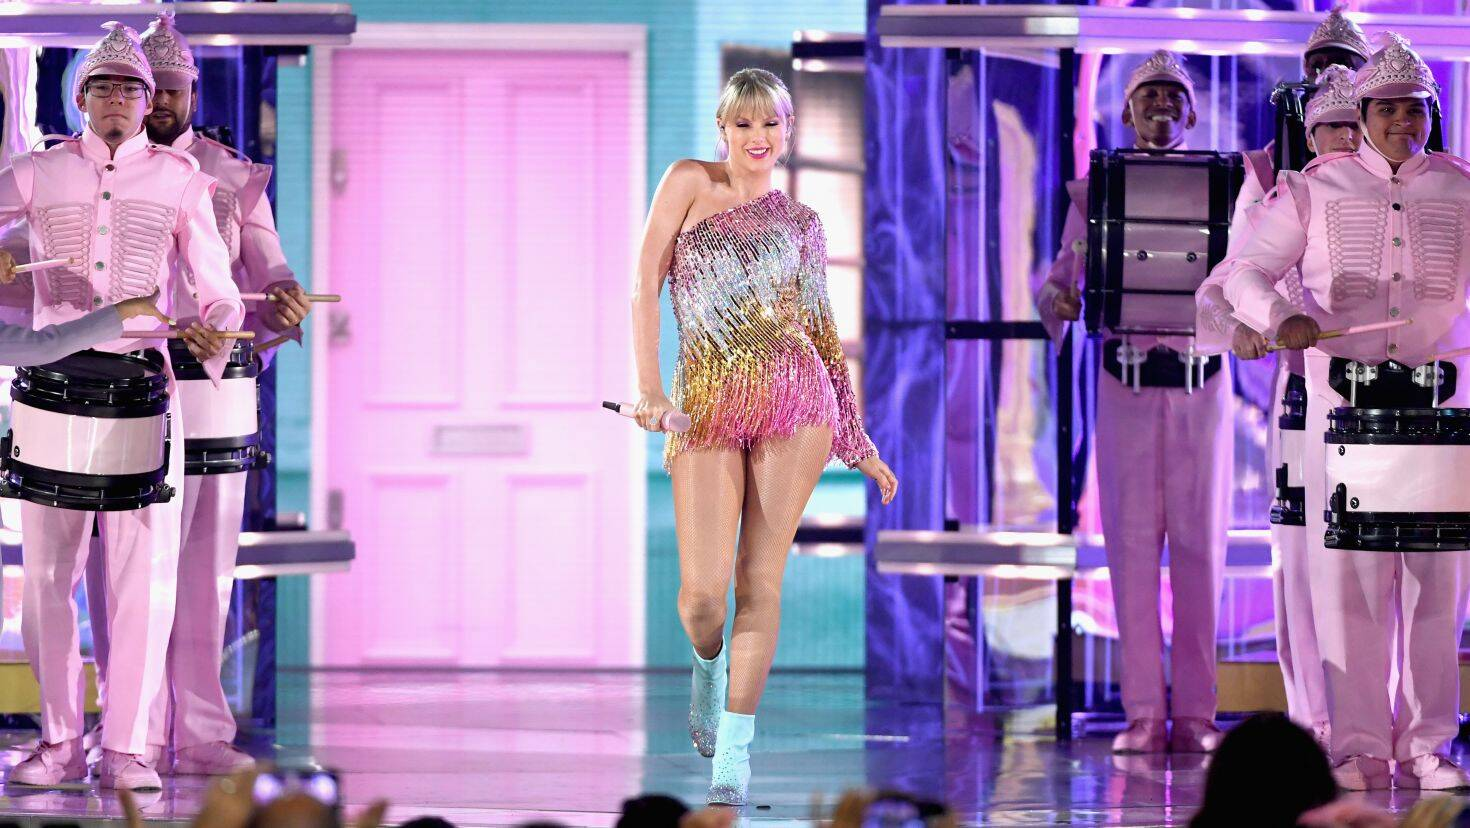 (Ethan Miller/Getty Images) / Taylor Swift's Execution of ME! onstage at the 2019 Billboard Music Awards in Las Vegas.